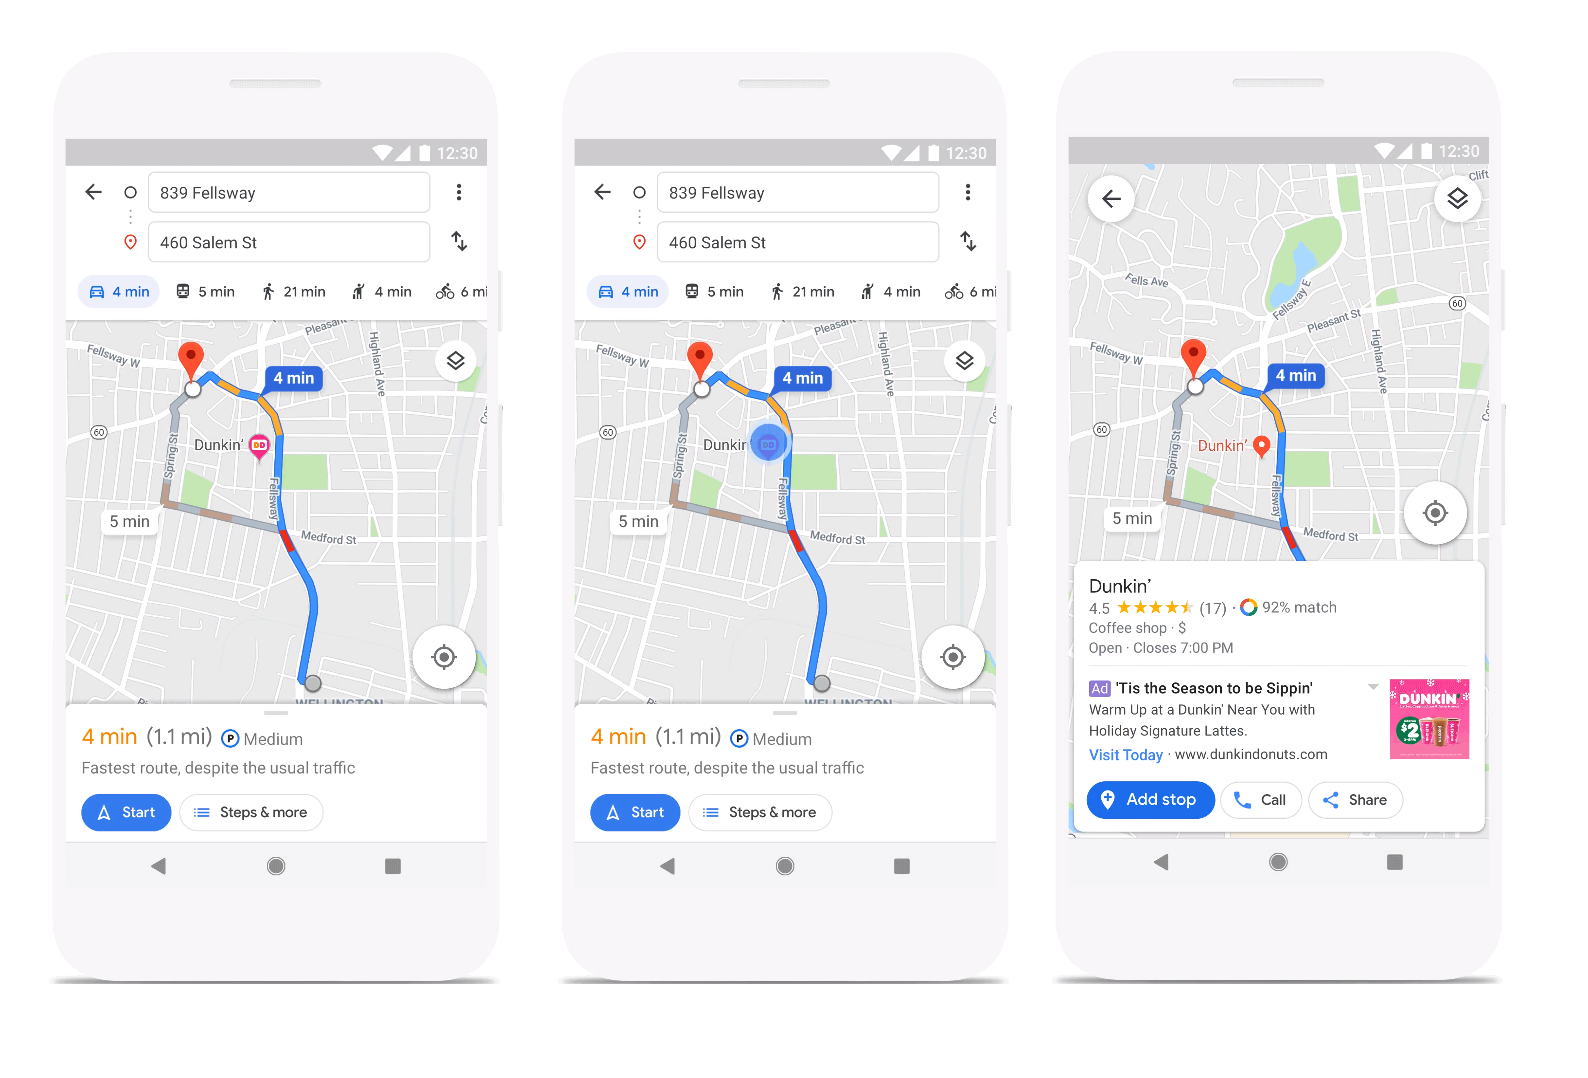 Holiday Special Google Maps App Update: Now Check Local ... on cafes nearby, food delivery nearby, parks nearby, attractions nearby, japanese gardens nearby,